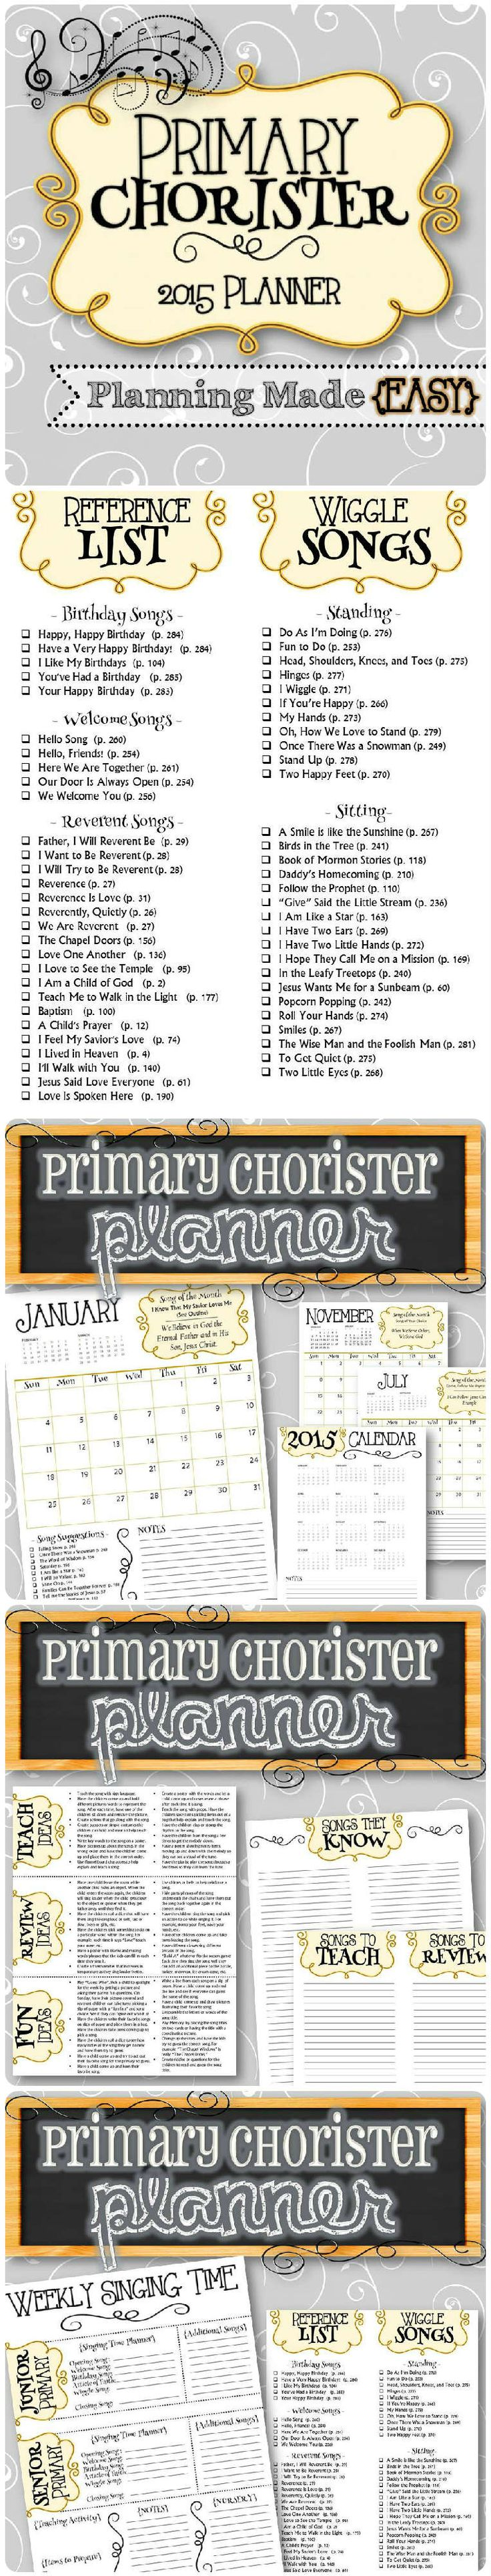 17 best images about singing a song is fun to do an all in one planner that tells you the monthly song and theme along song suggestions by month teaching ideas reference lists